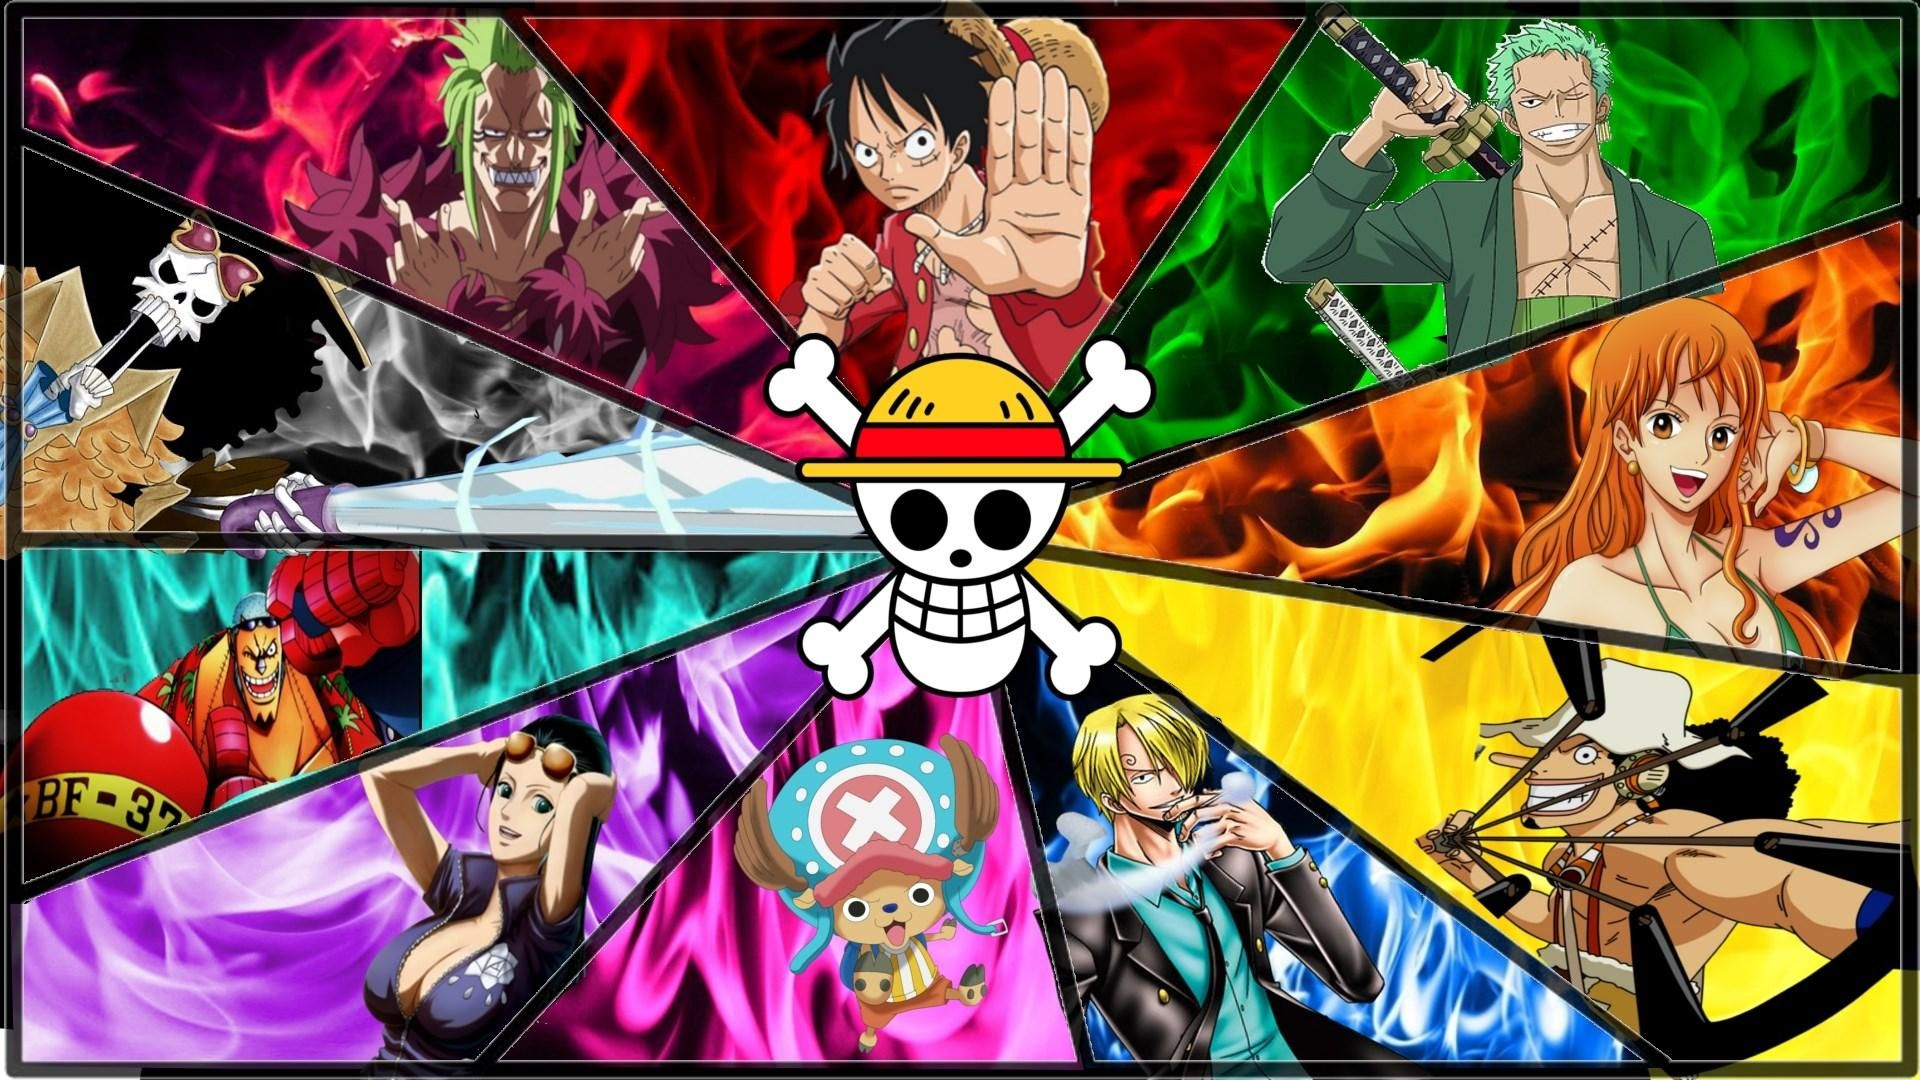 The view from your computer may not be ideal, but even if you can't see the world in reality you can easily shift your desktop to another part of the world with a great image. One Piece Anime Background - 1920x1080 - Download HD ...